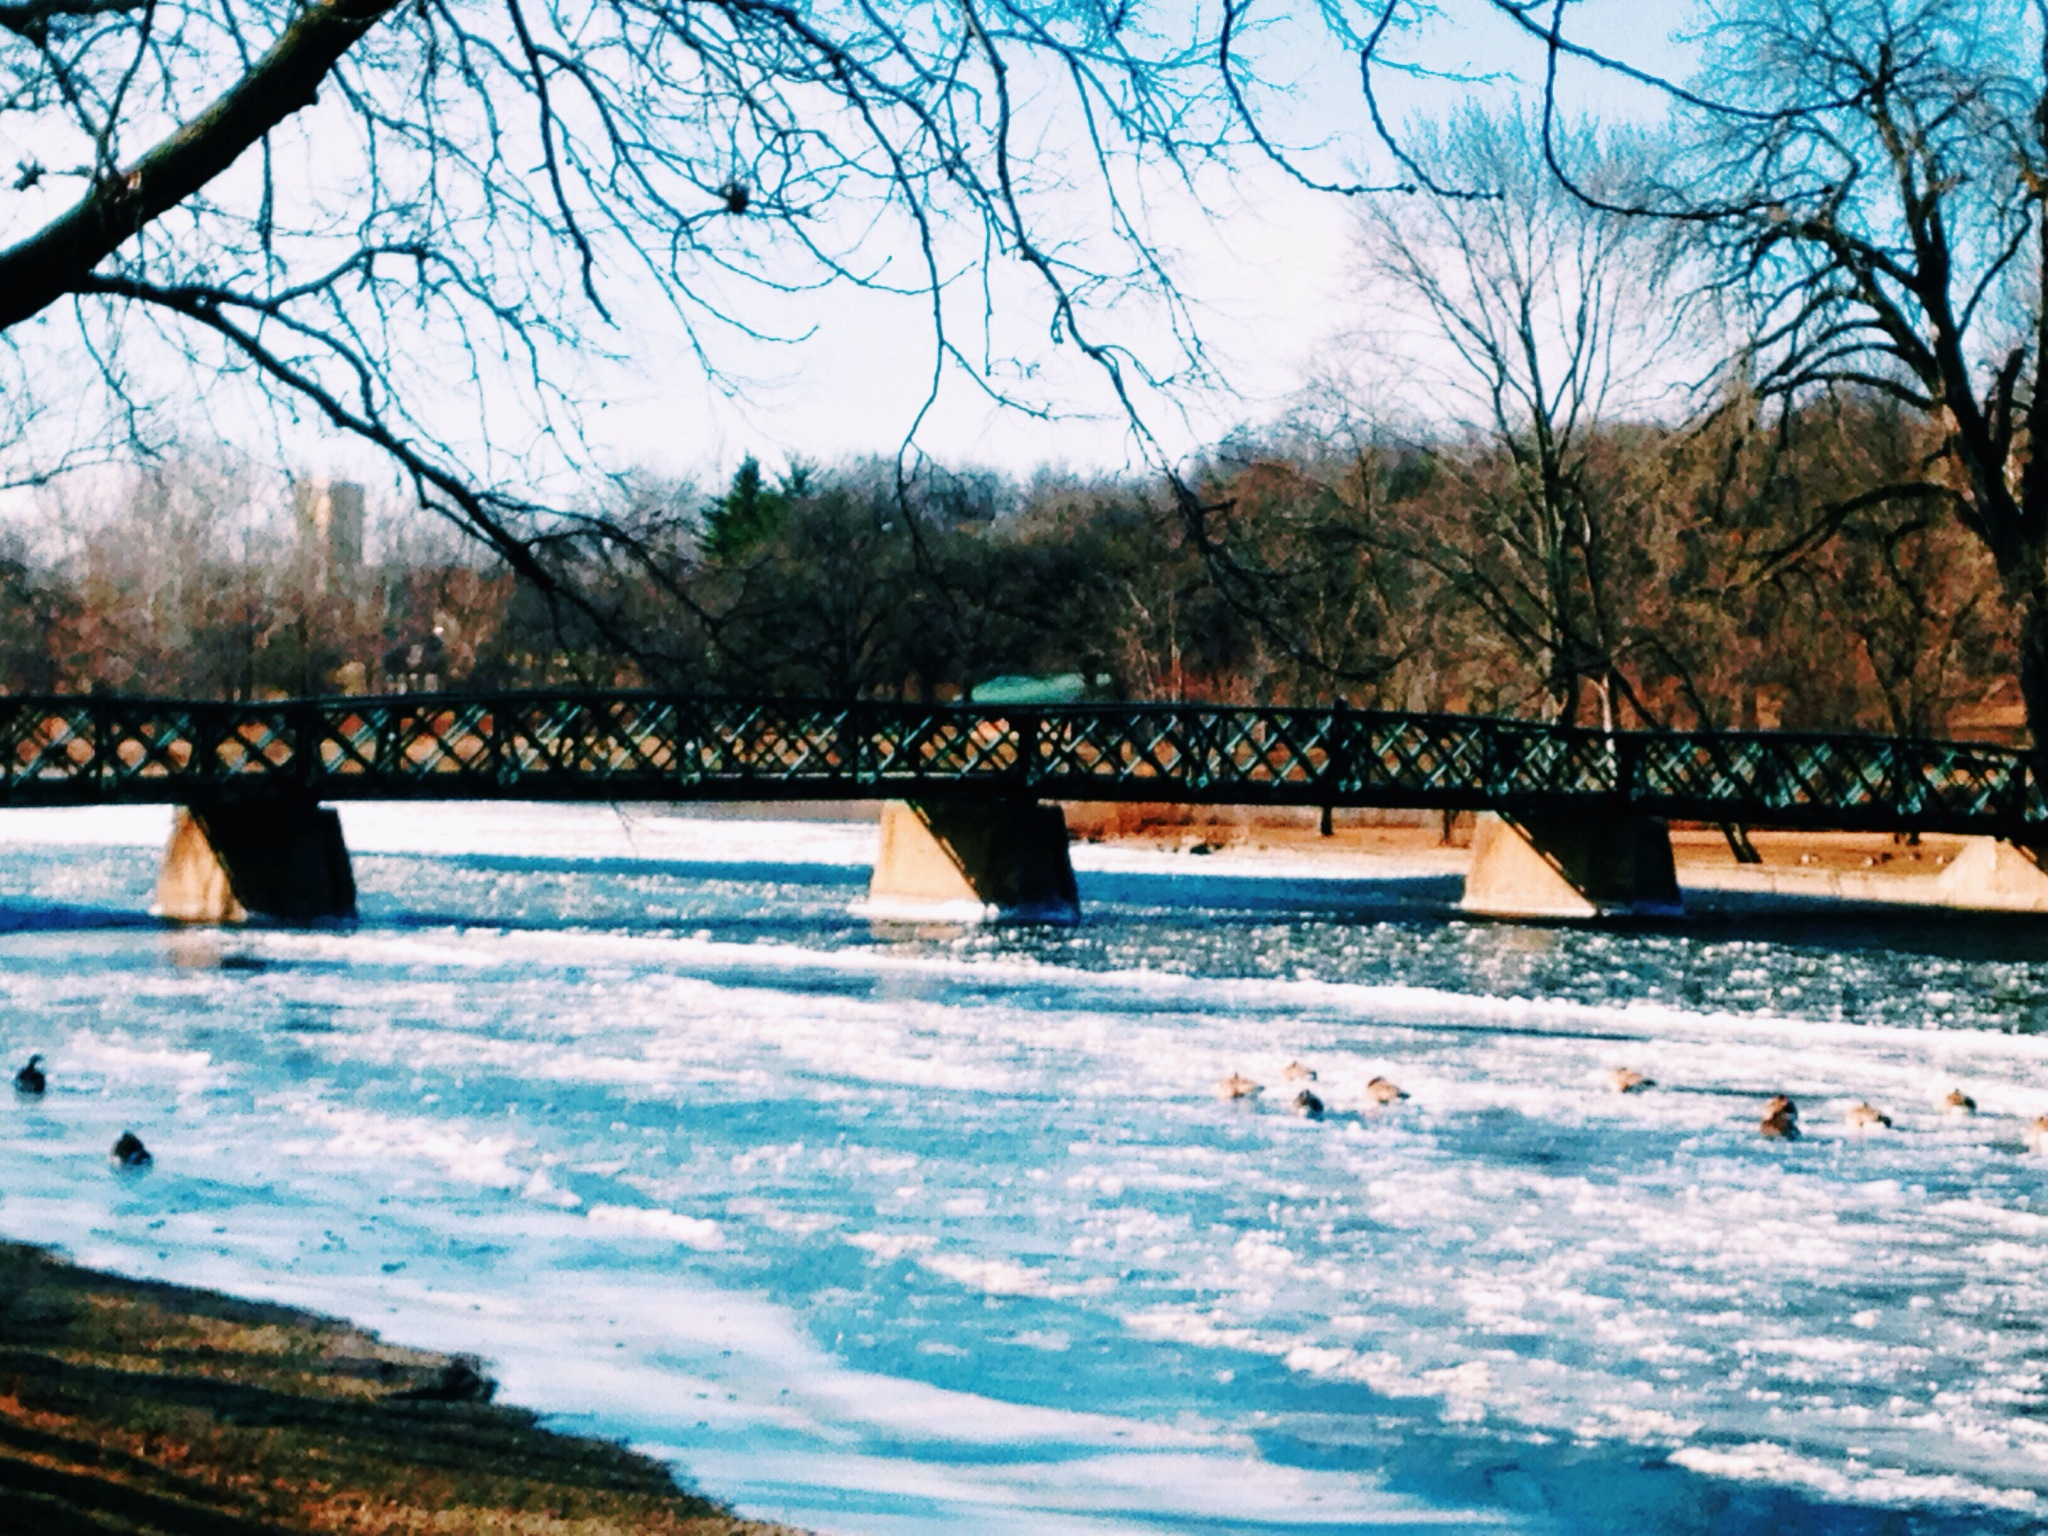 Frozen Fox River - Karen Muehlfelt